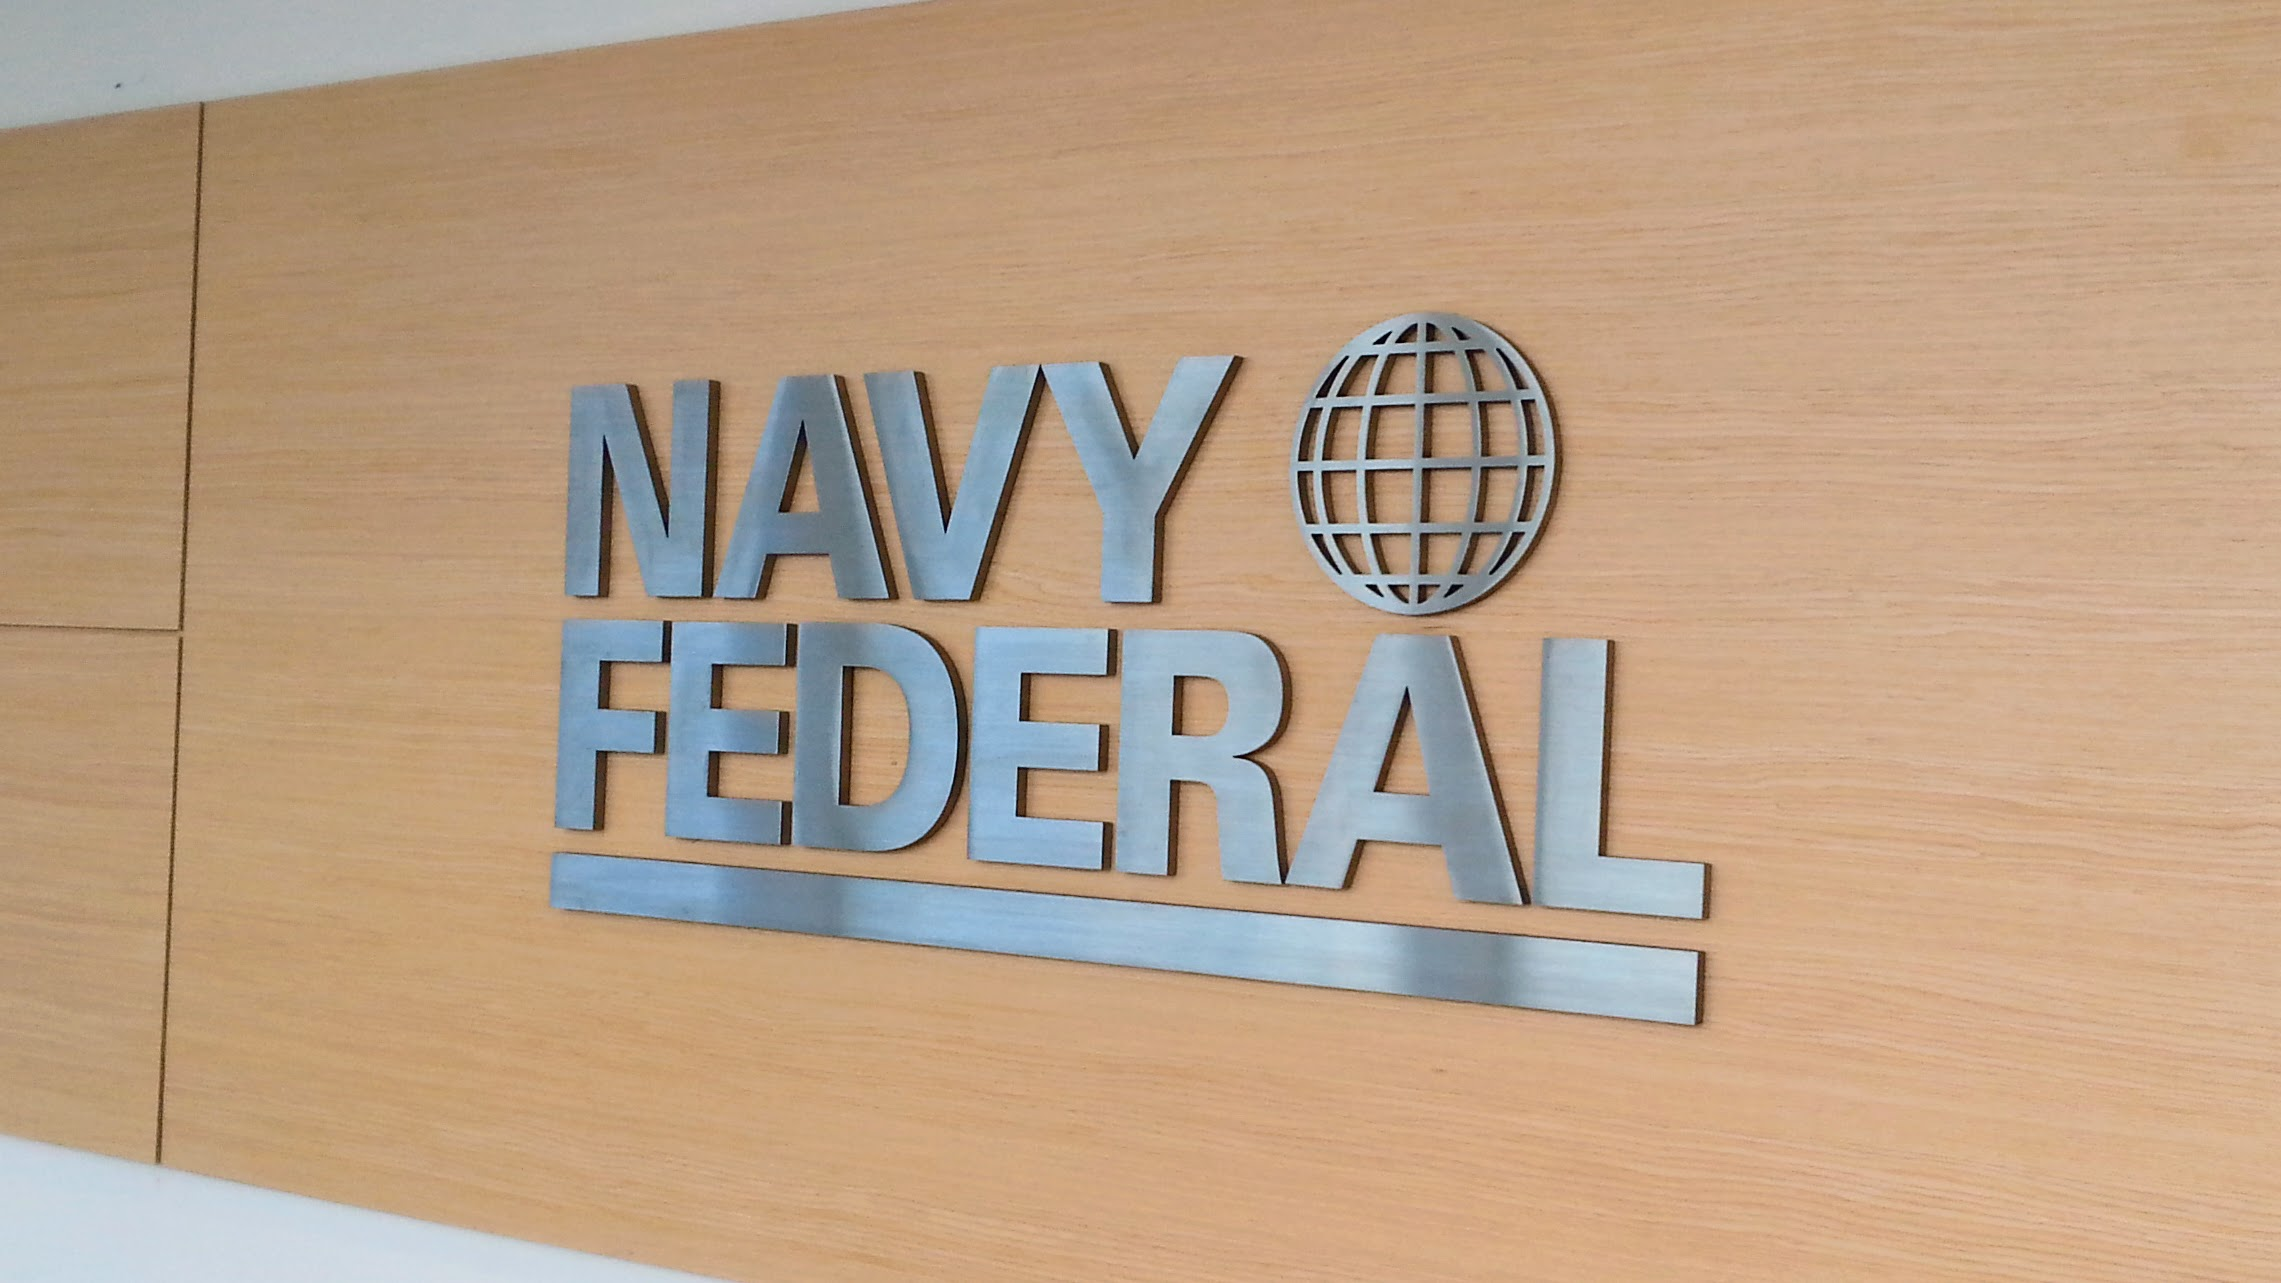 Architectural signage for Navy Federal by Pensacola Sign